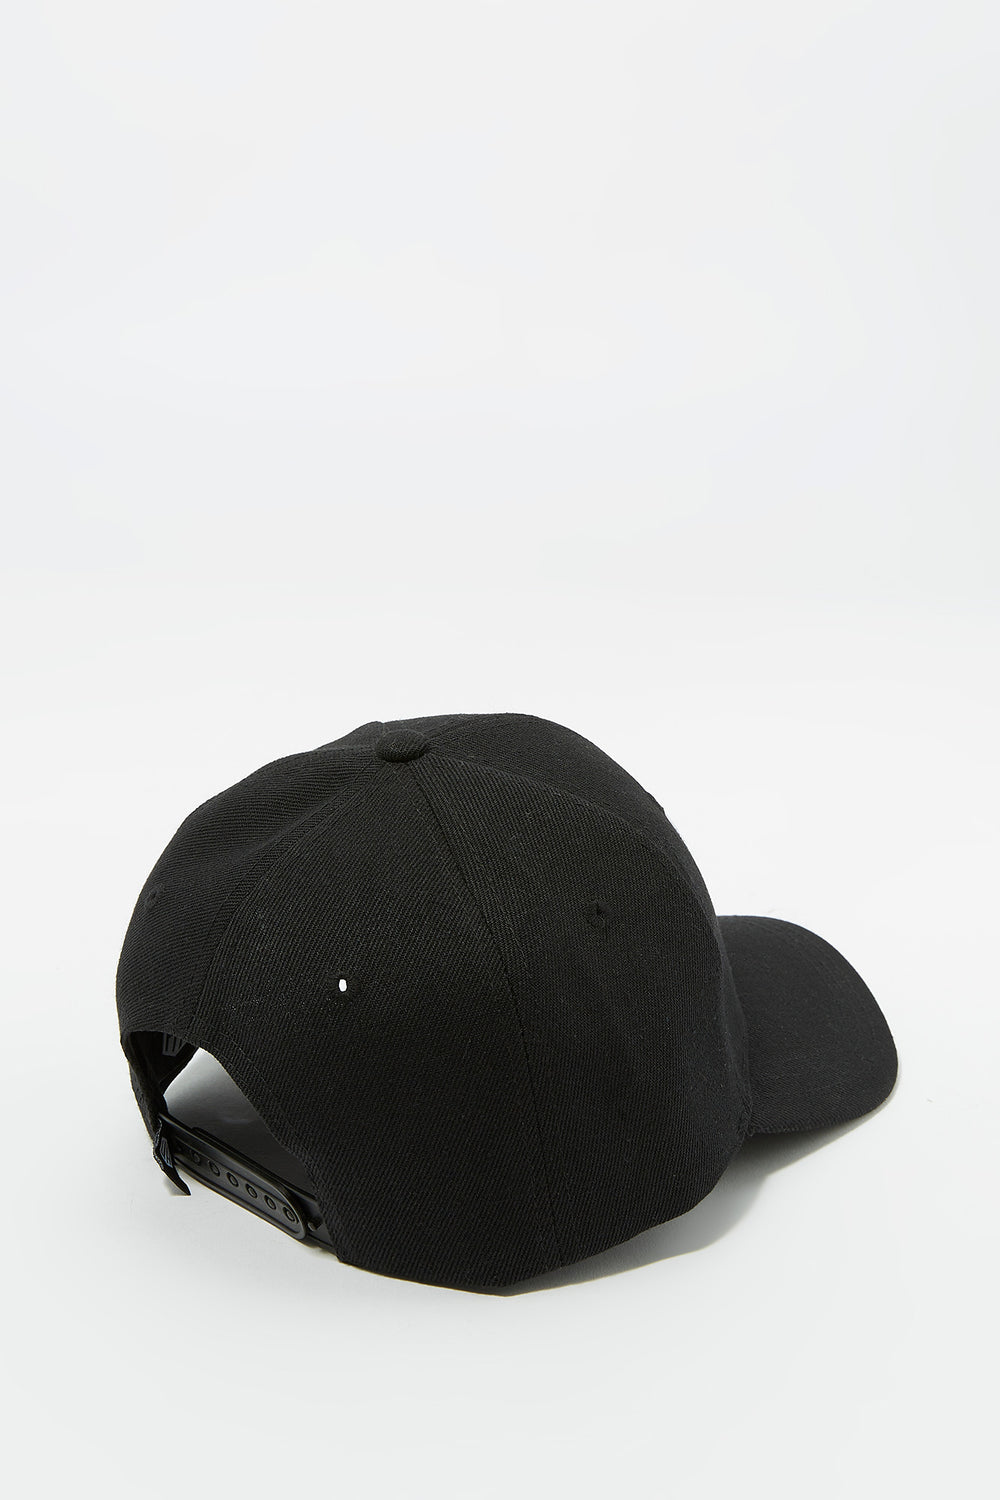 NASA Snapback Baseball Cap Black